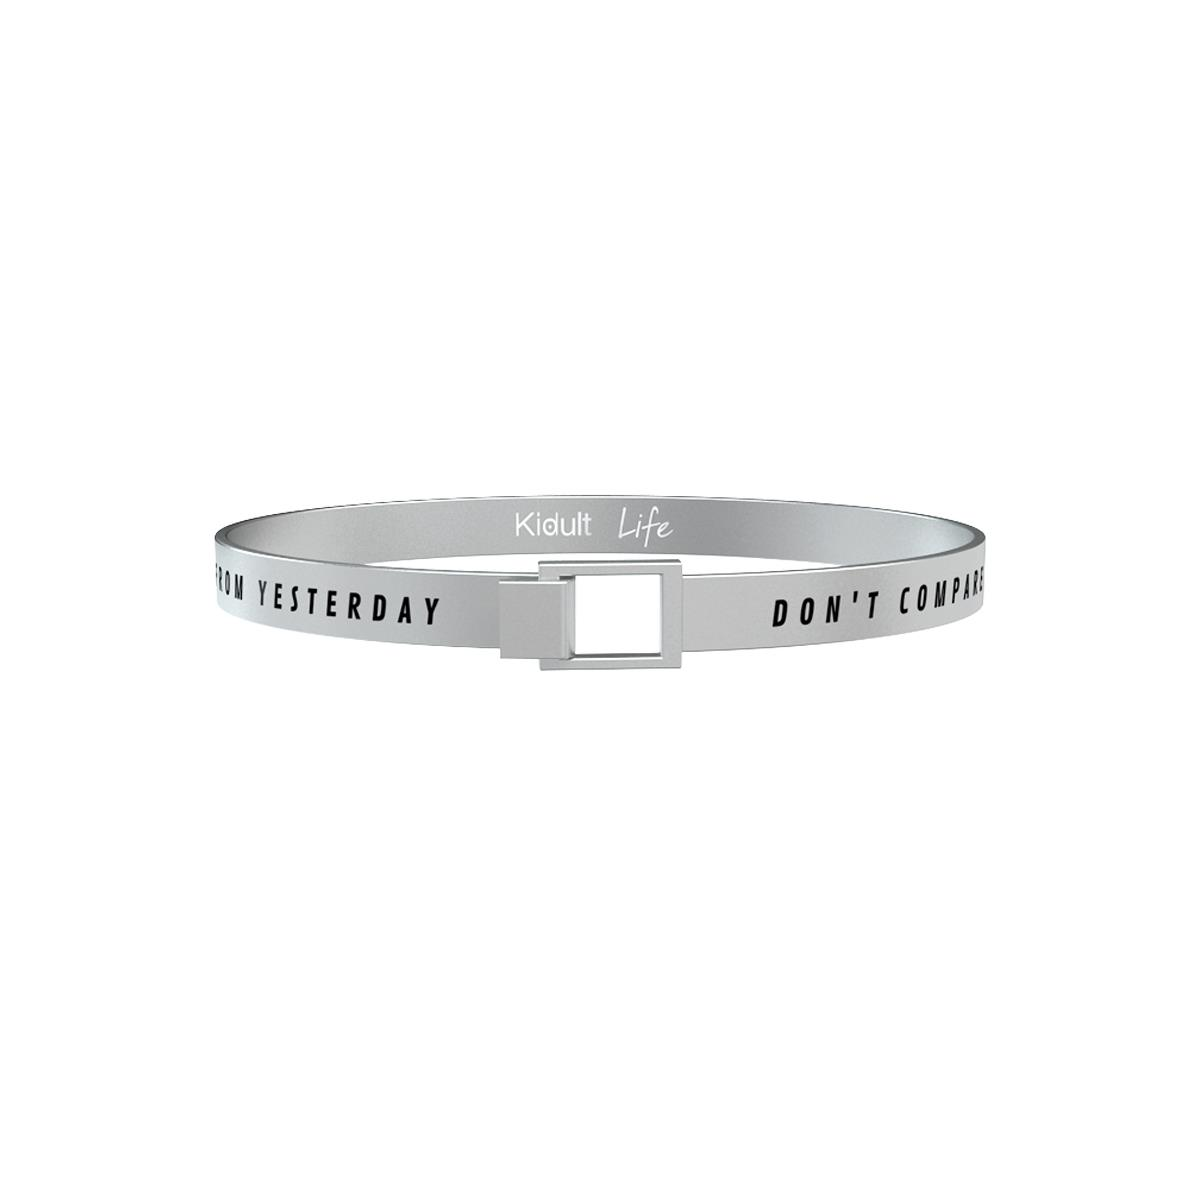 Bracciale Philosophy Uomo in Acciaio Don't compare yourself to others 731199 - KIDULT